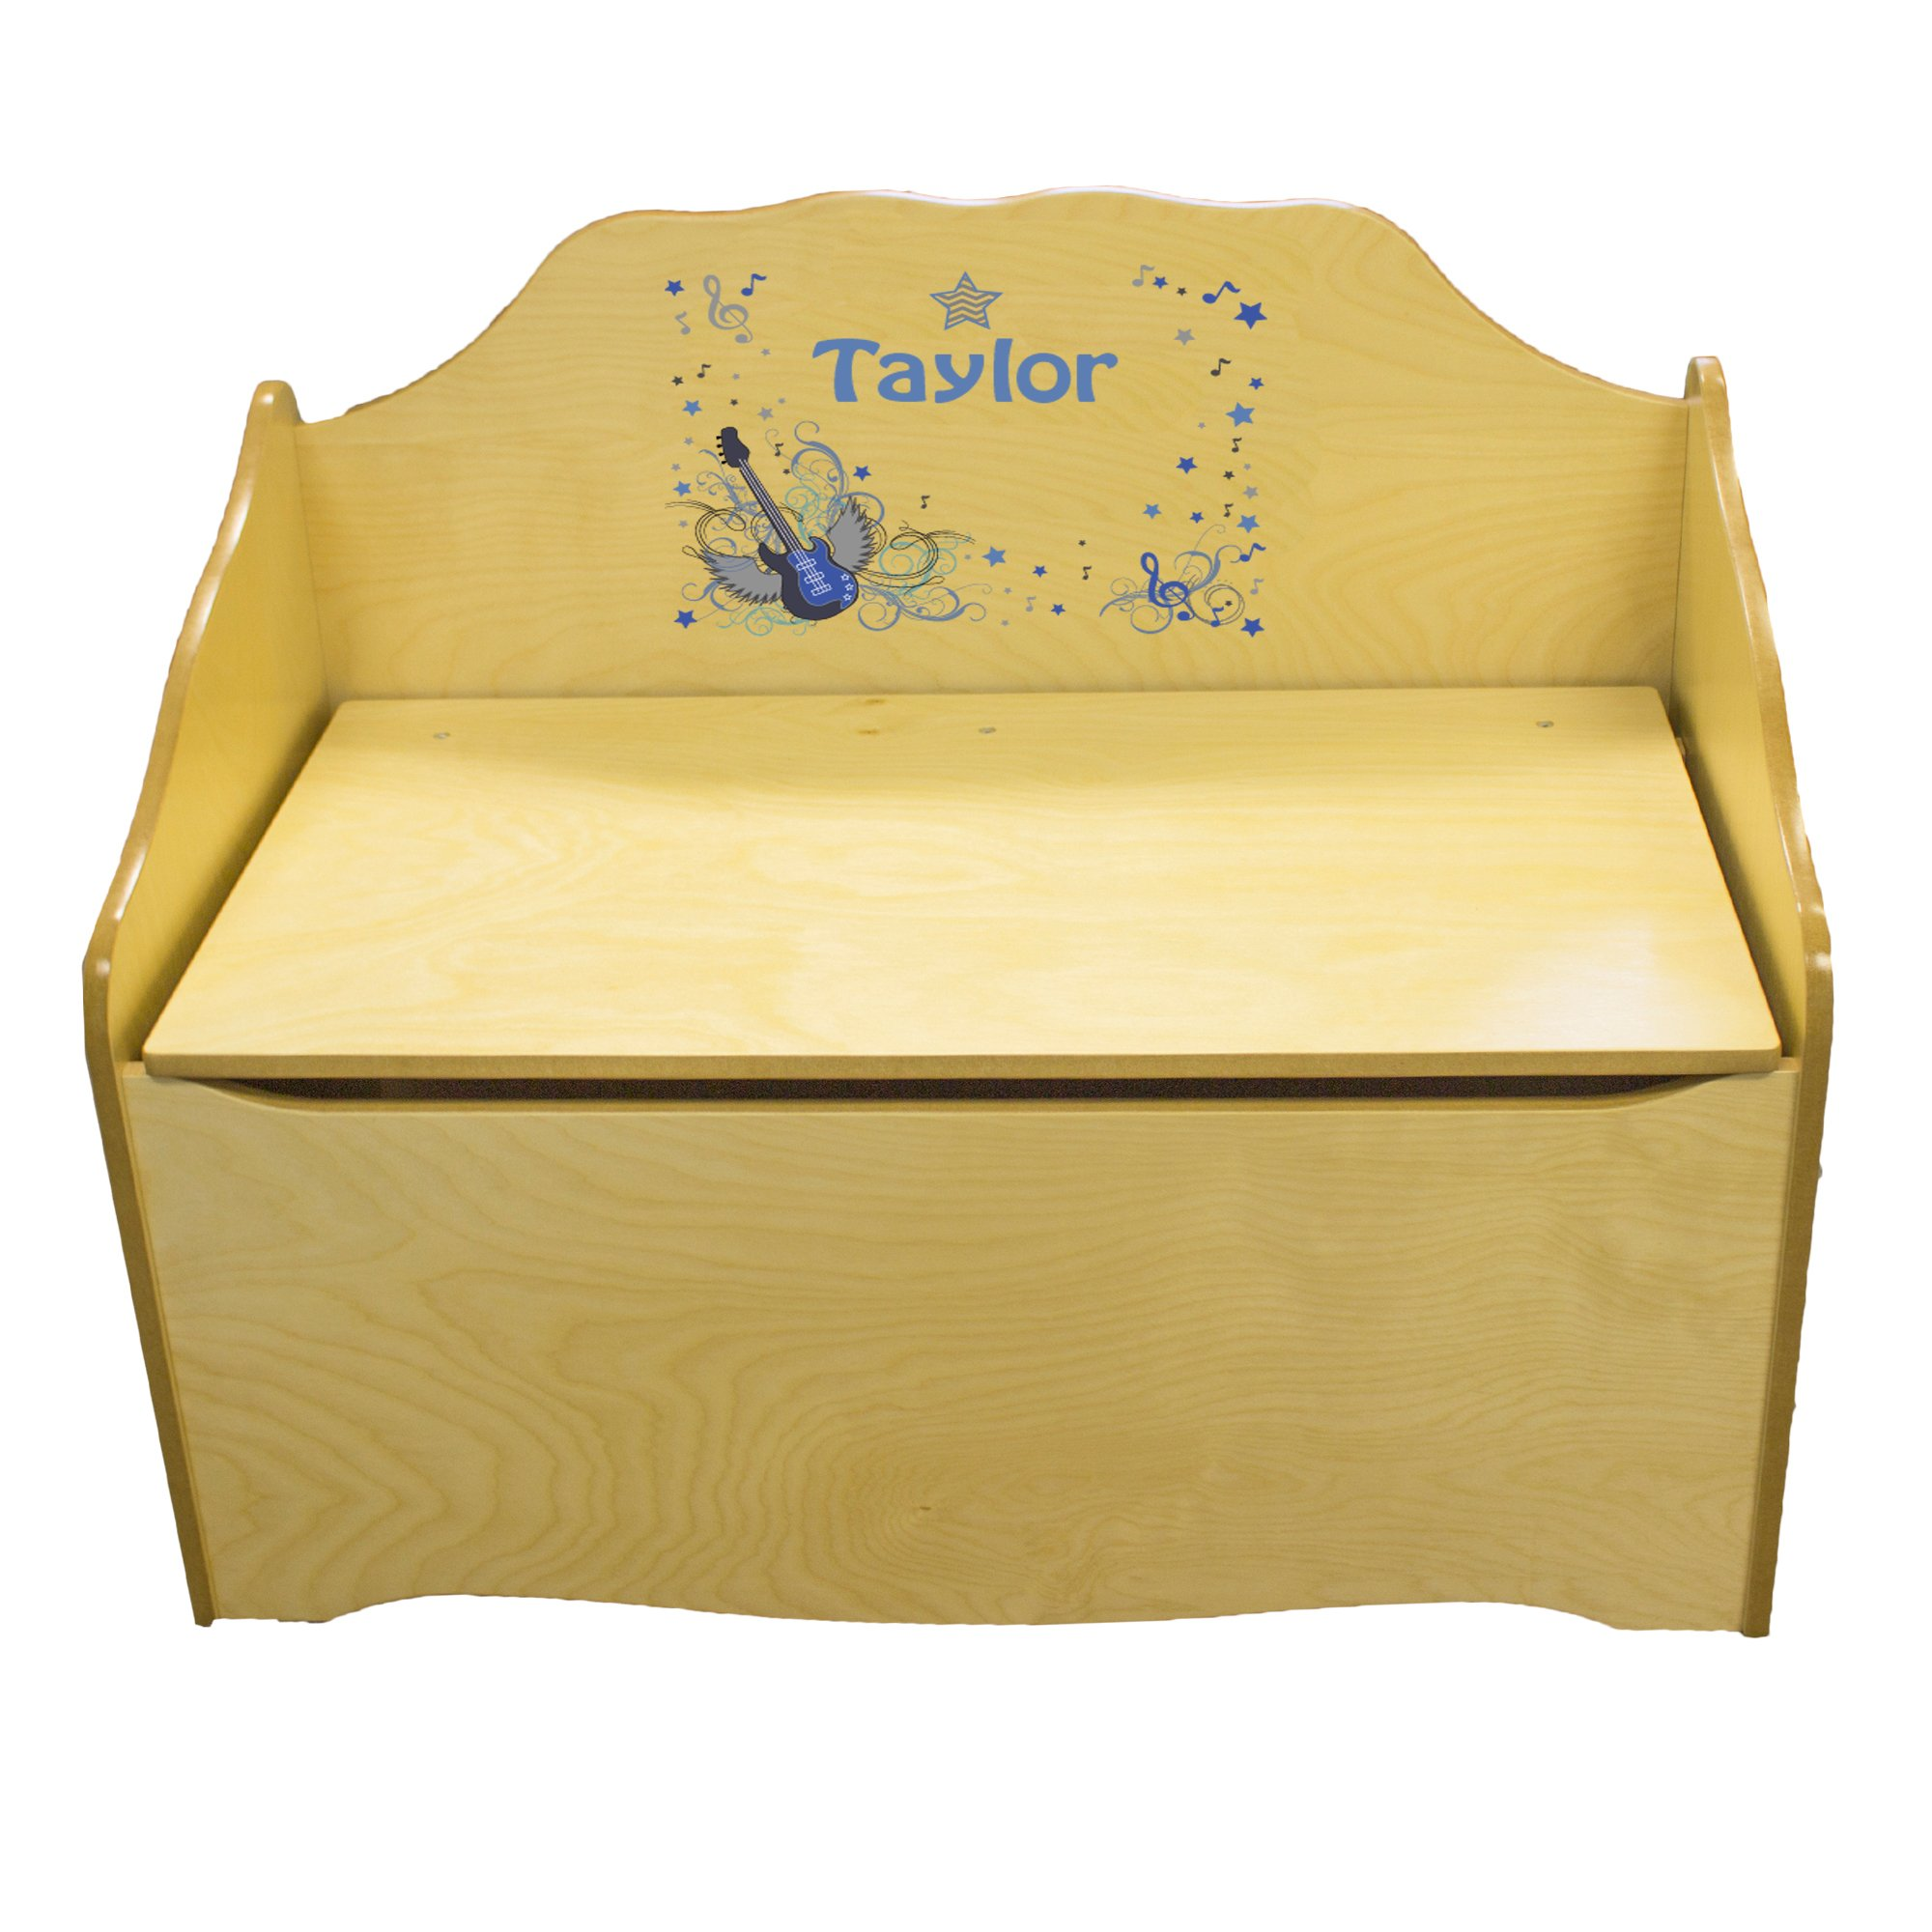 Personalized Blue Rock Star Childrens Natural Wooden Toy Chest